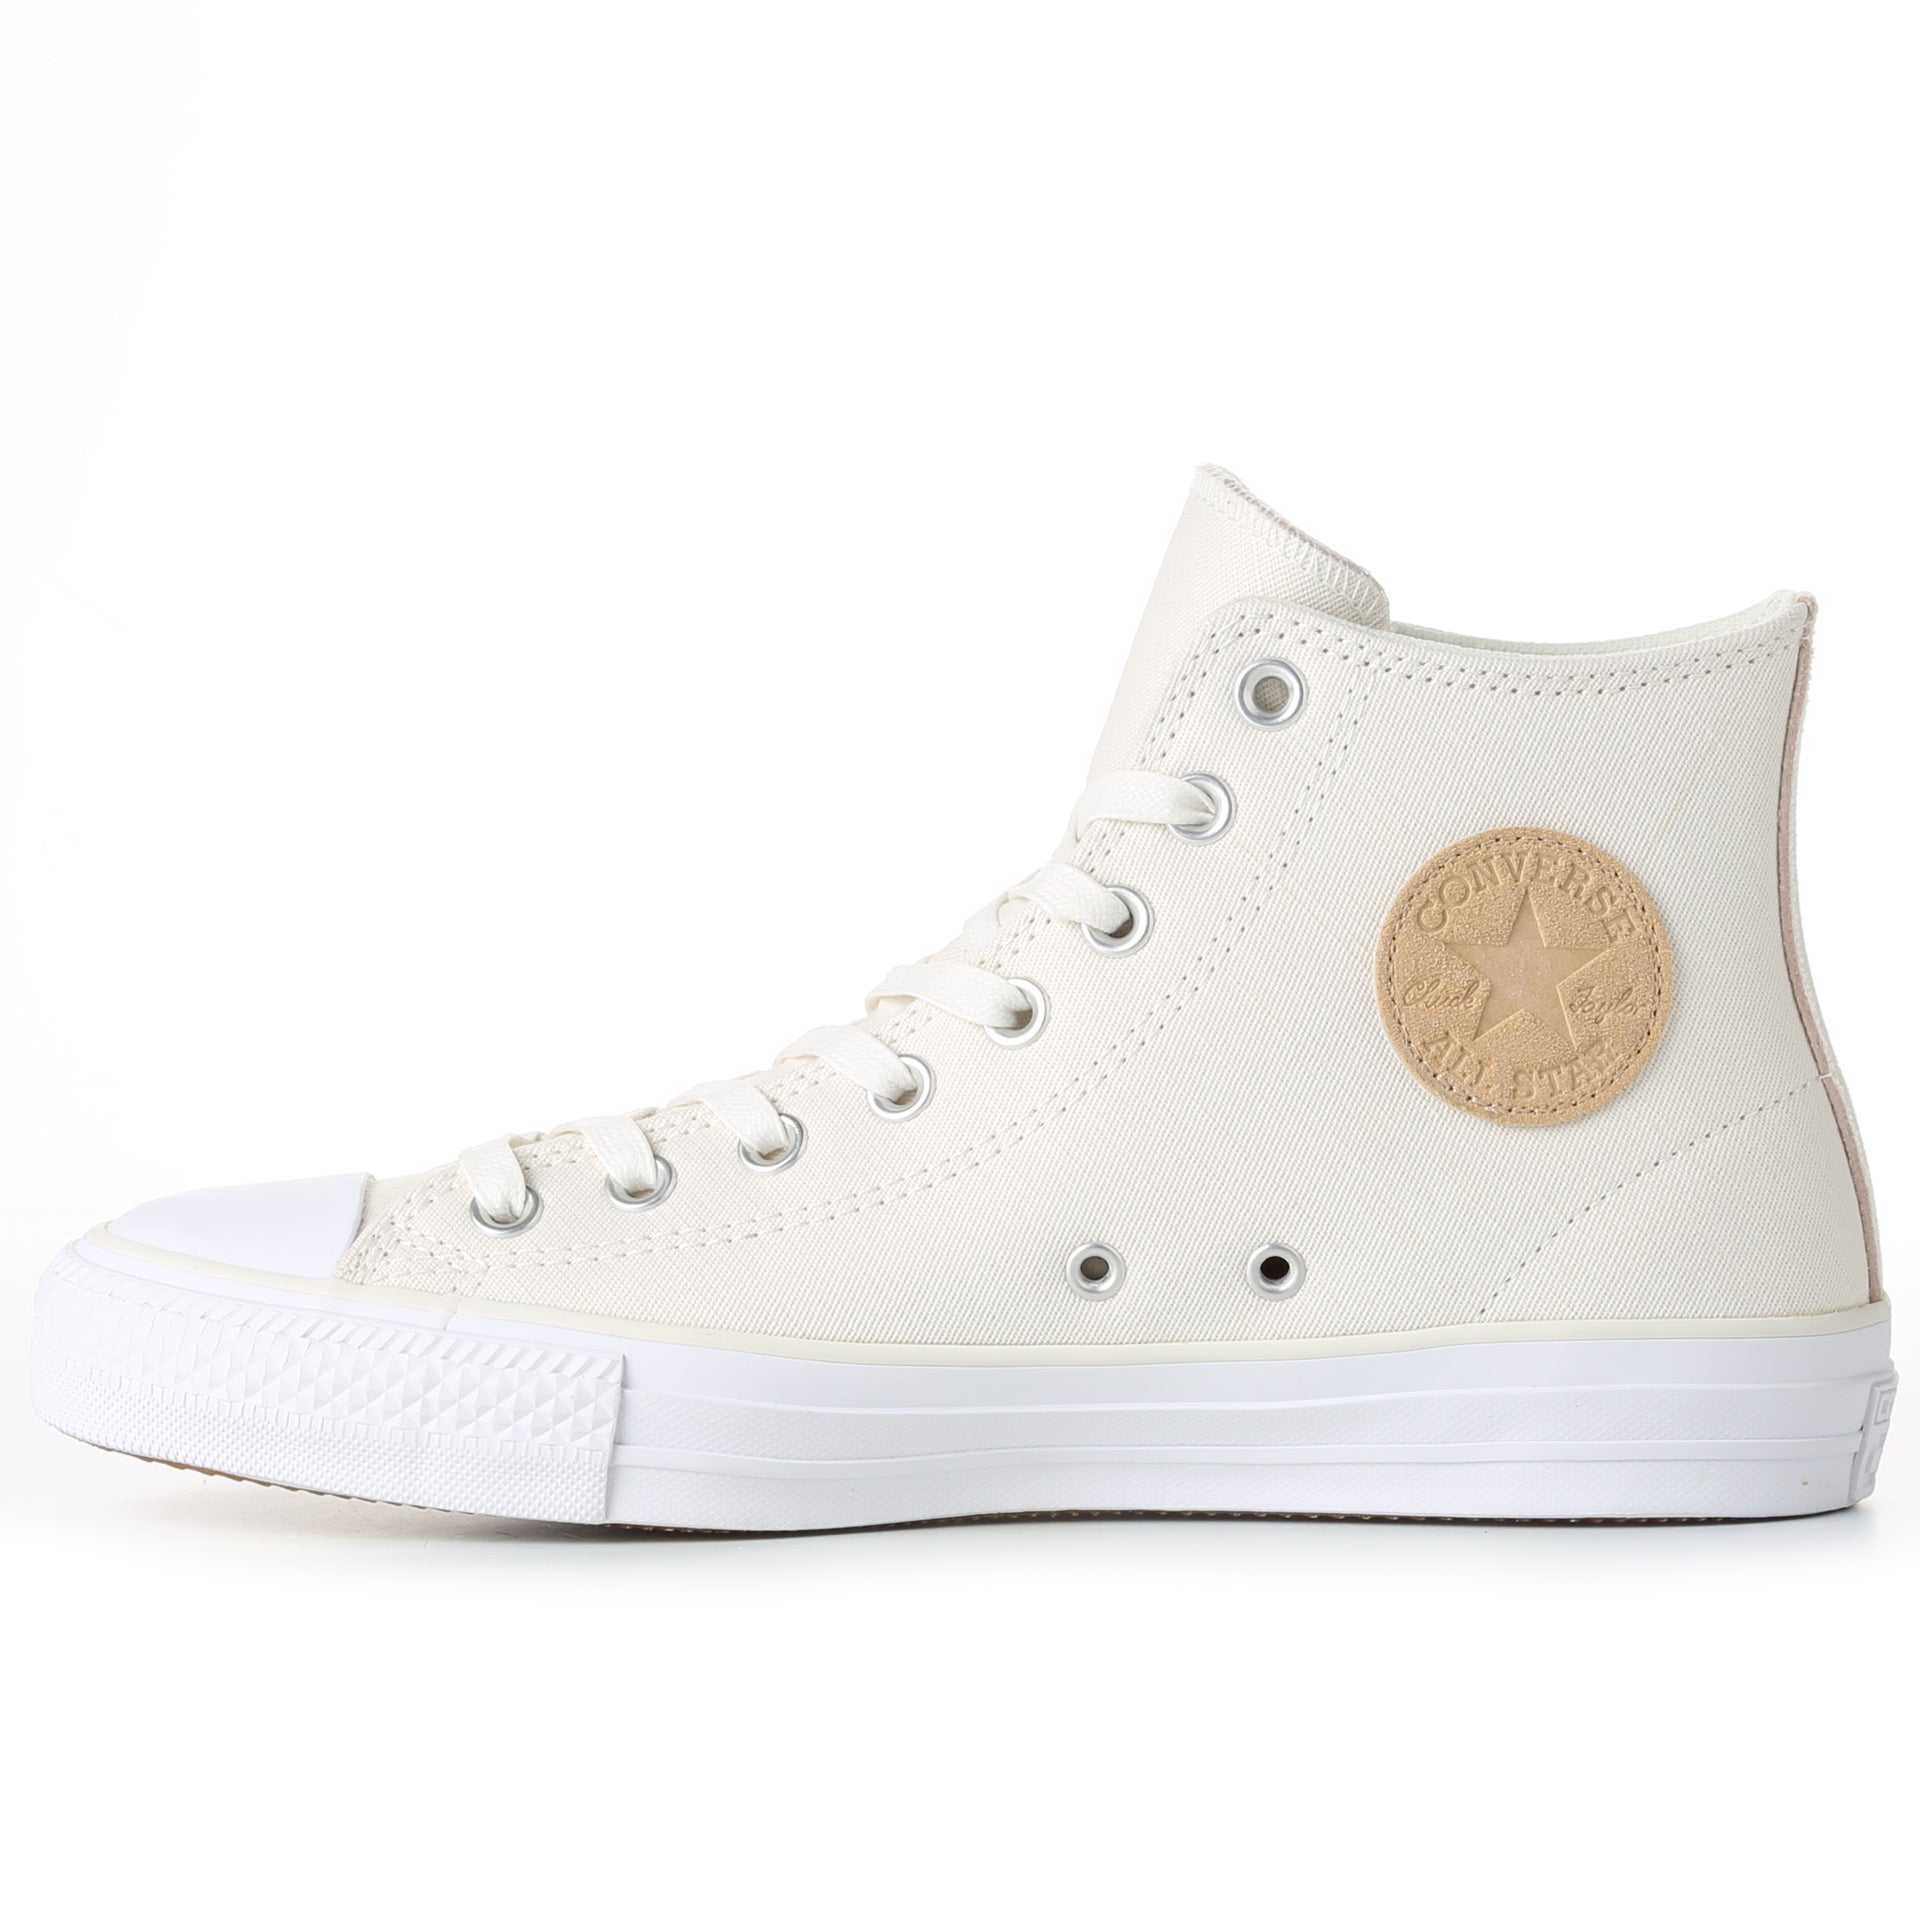 huge discount a18cb 899b5 Converse CTAS Pro Suede Backed Twill High Top - Egret Dusk Pink